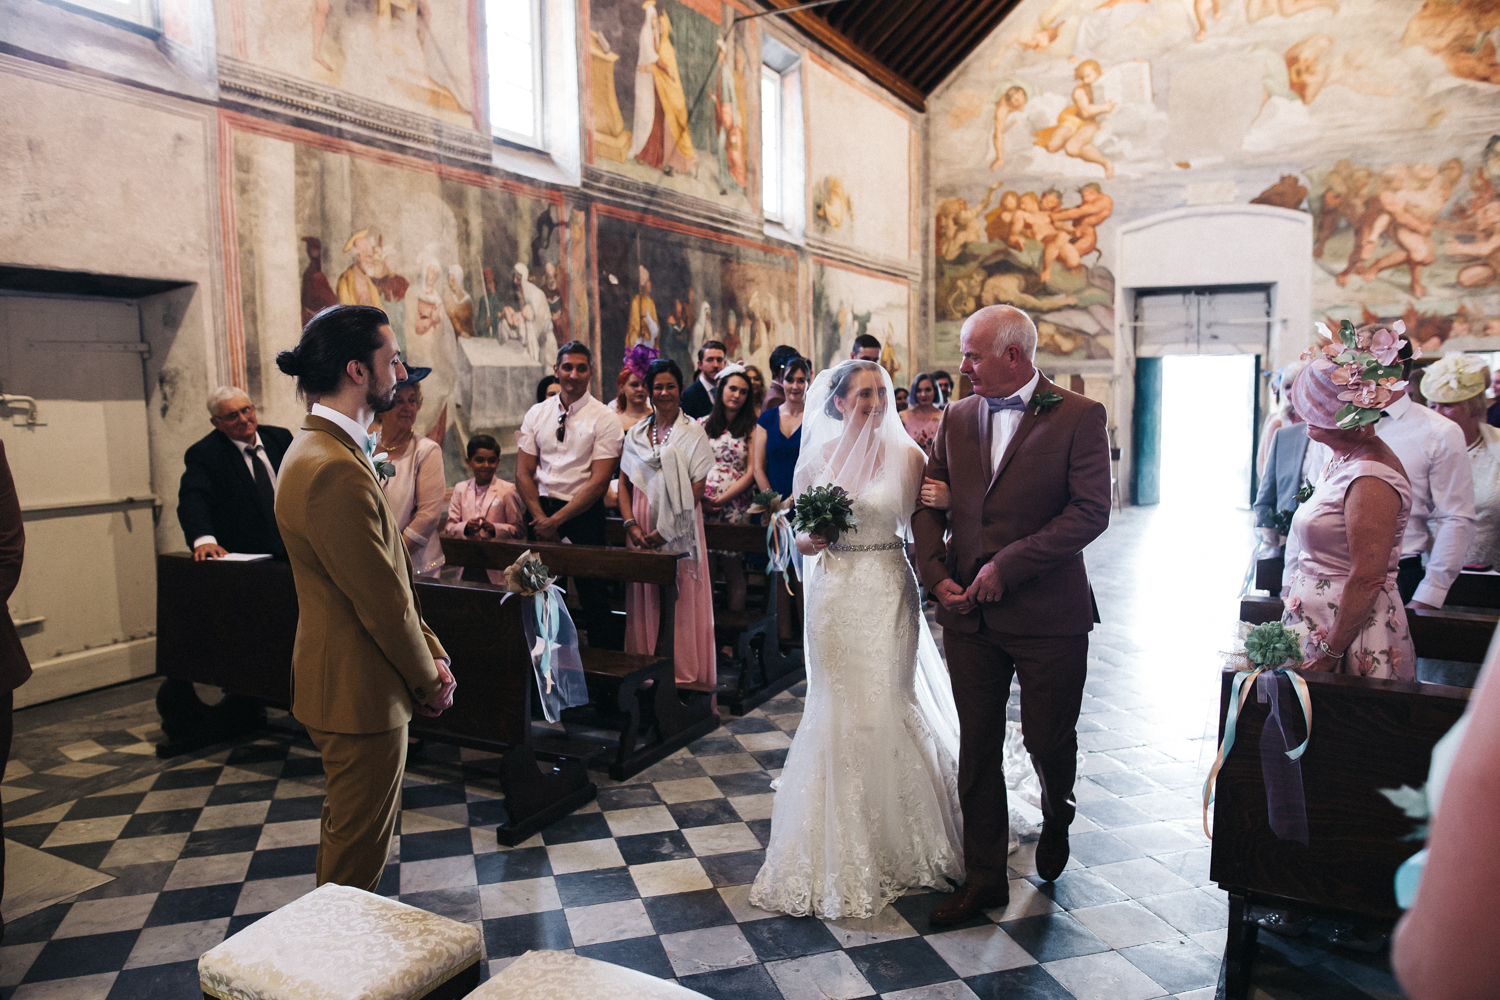 a bride and groom meet at the bottom of the aisle. destination wedding photography italy pisa florence. stop motion wedding films videos uk